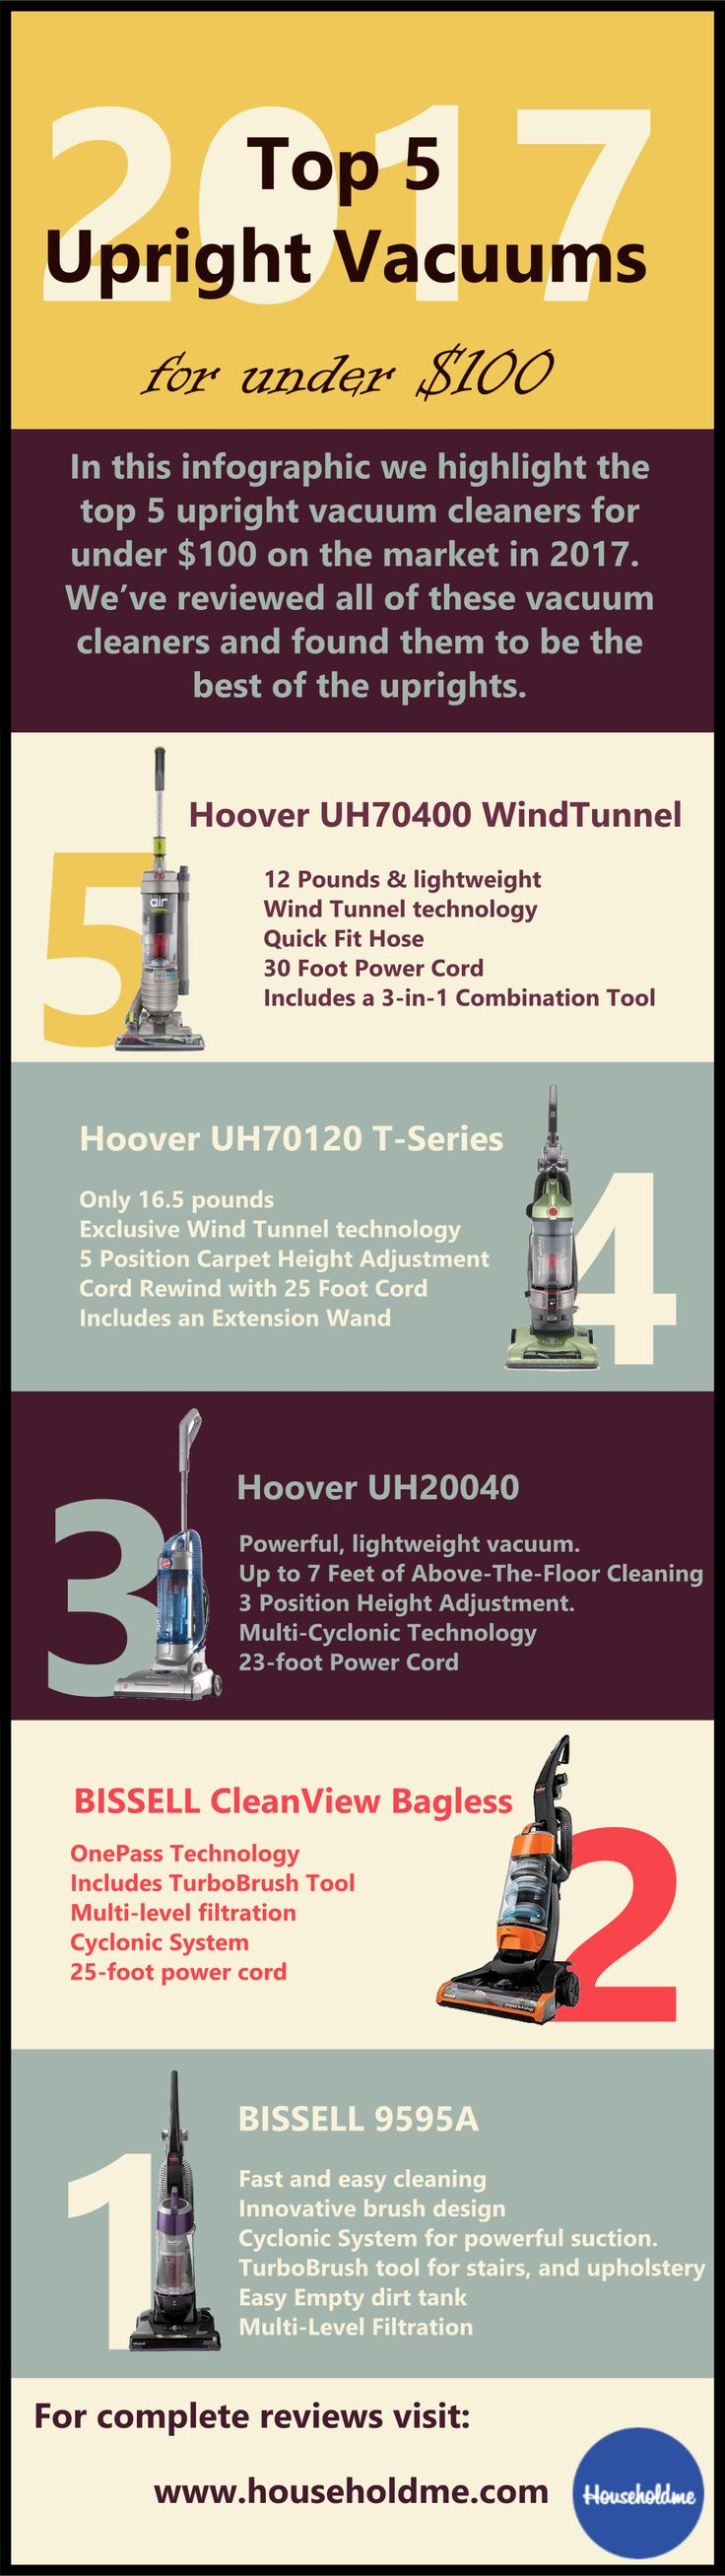 #upright #uprightvacuum #vacuums #householdme #top5upright #topvacuum2017 #vacuums2017 #infographic #topinfographic    top 5 upright vacuums 2017